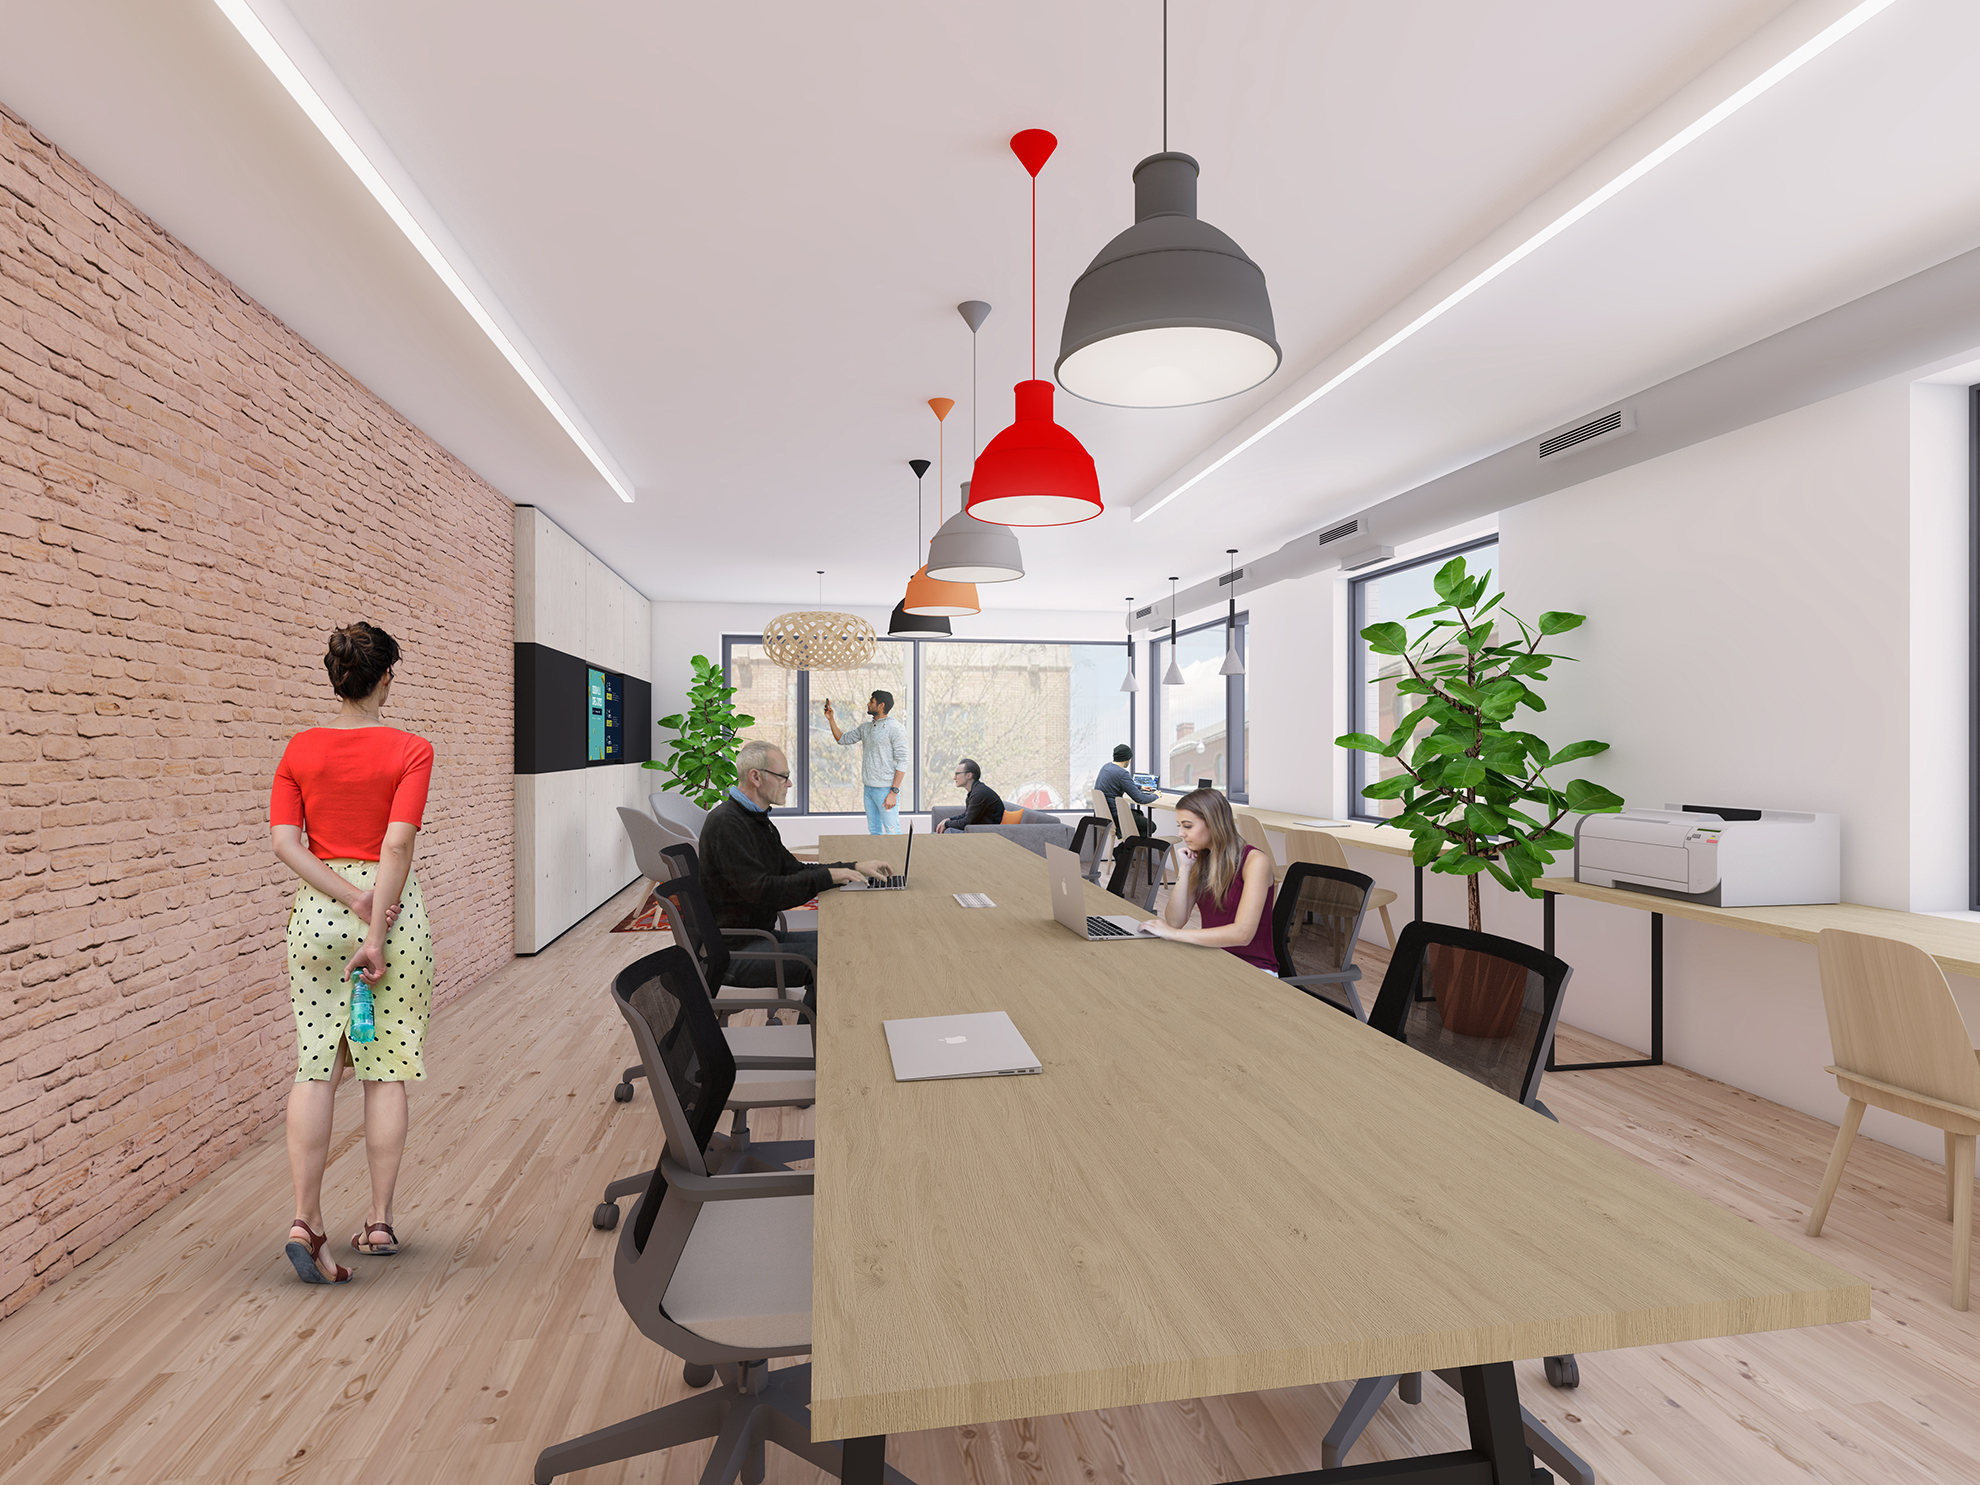 1151 St Clair Ave W - Coworking space1.jpg